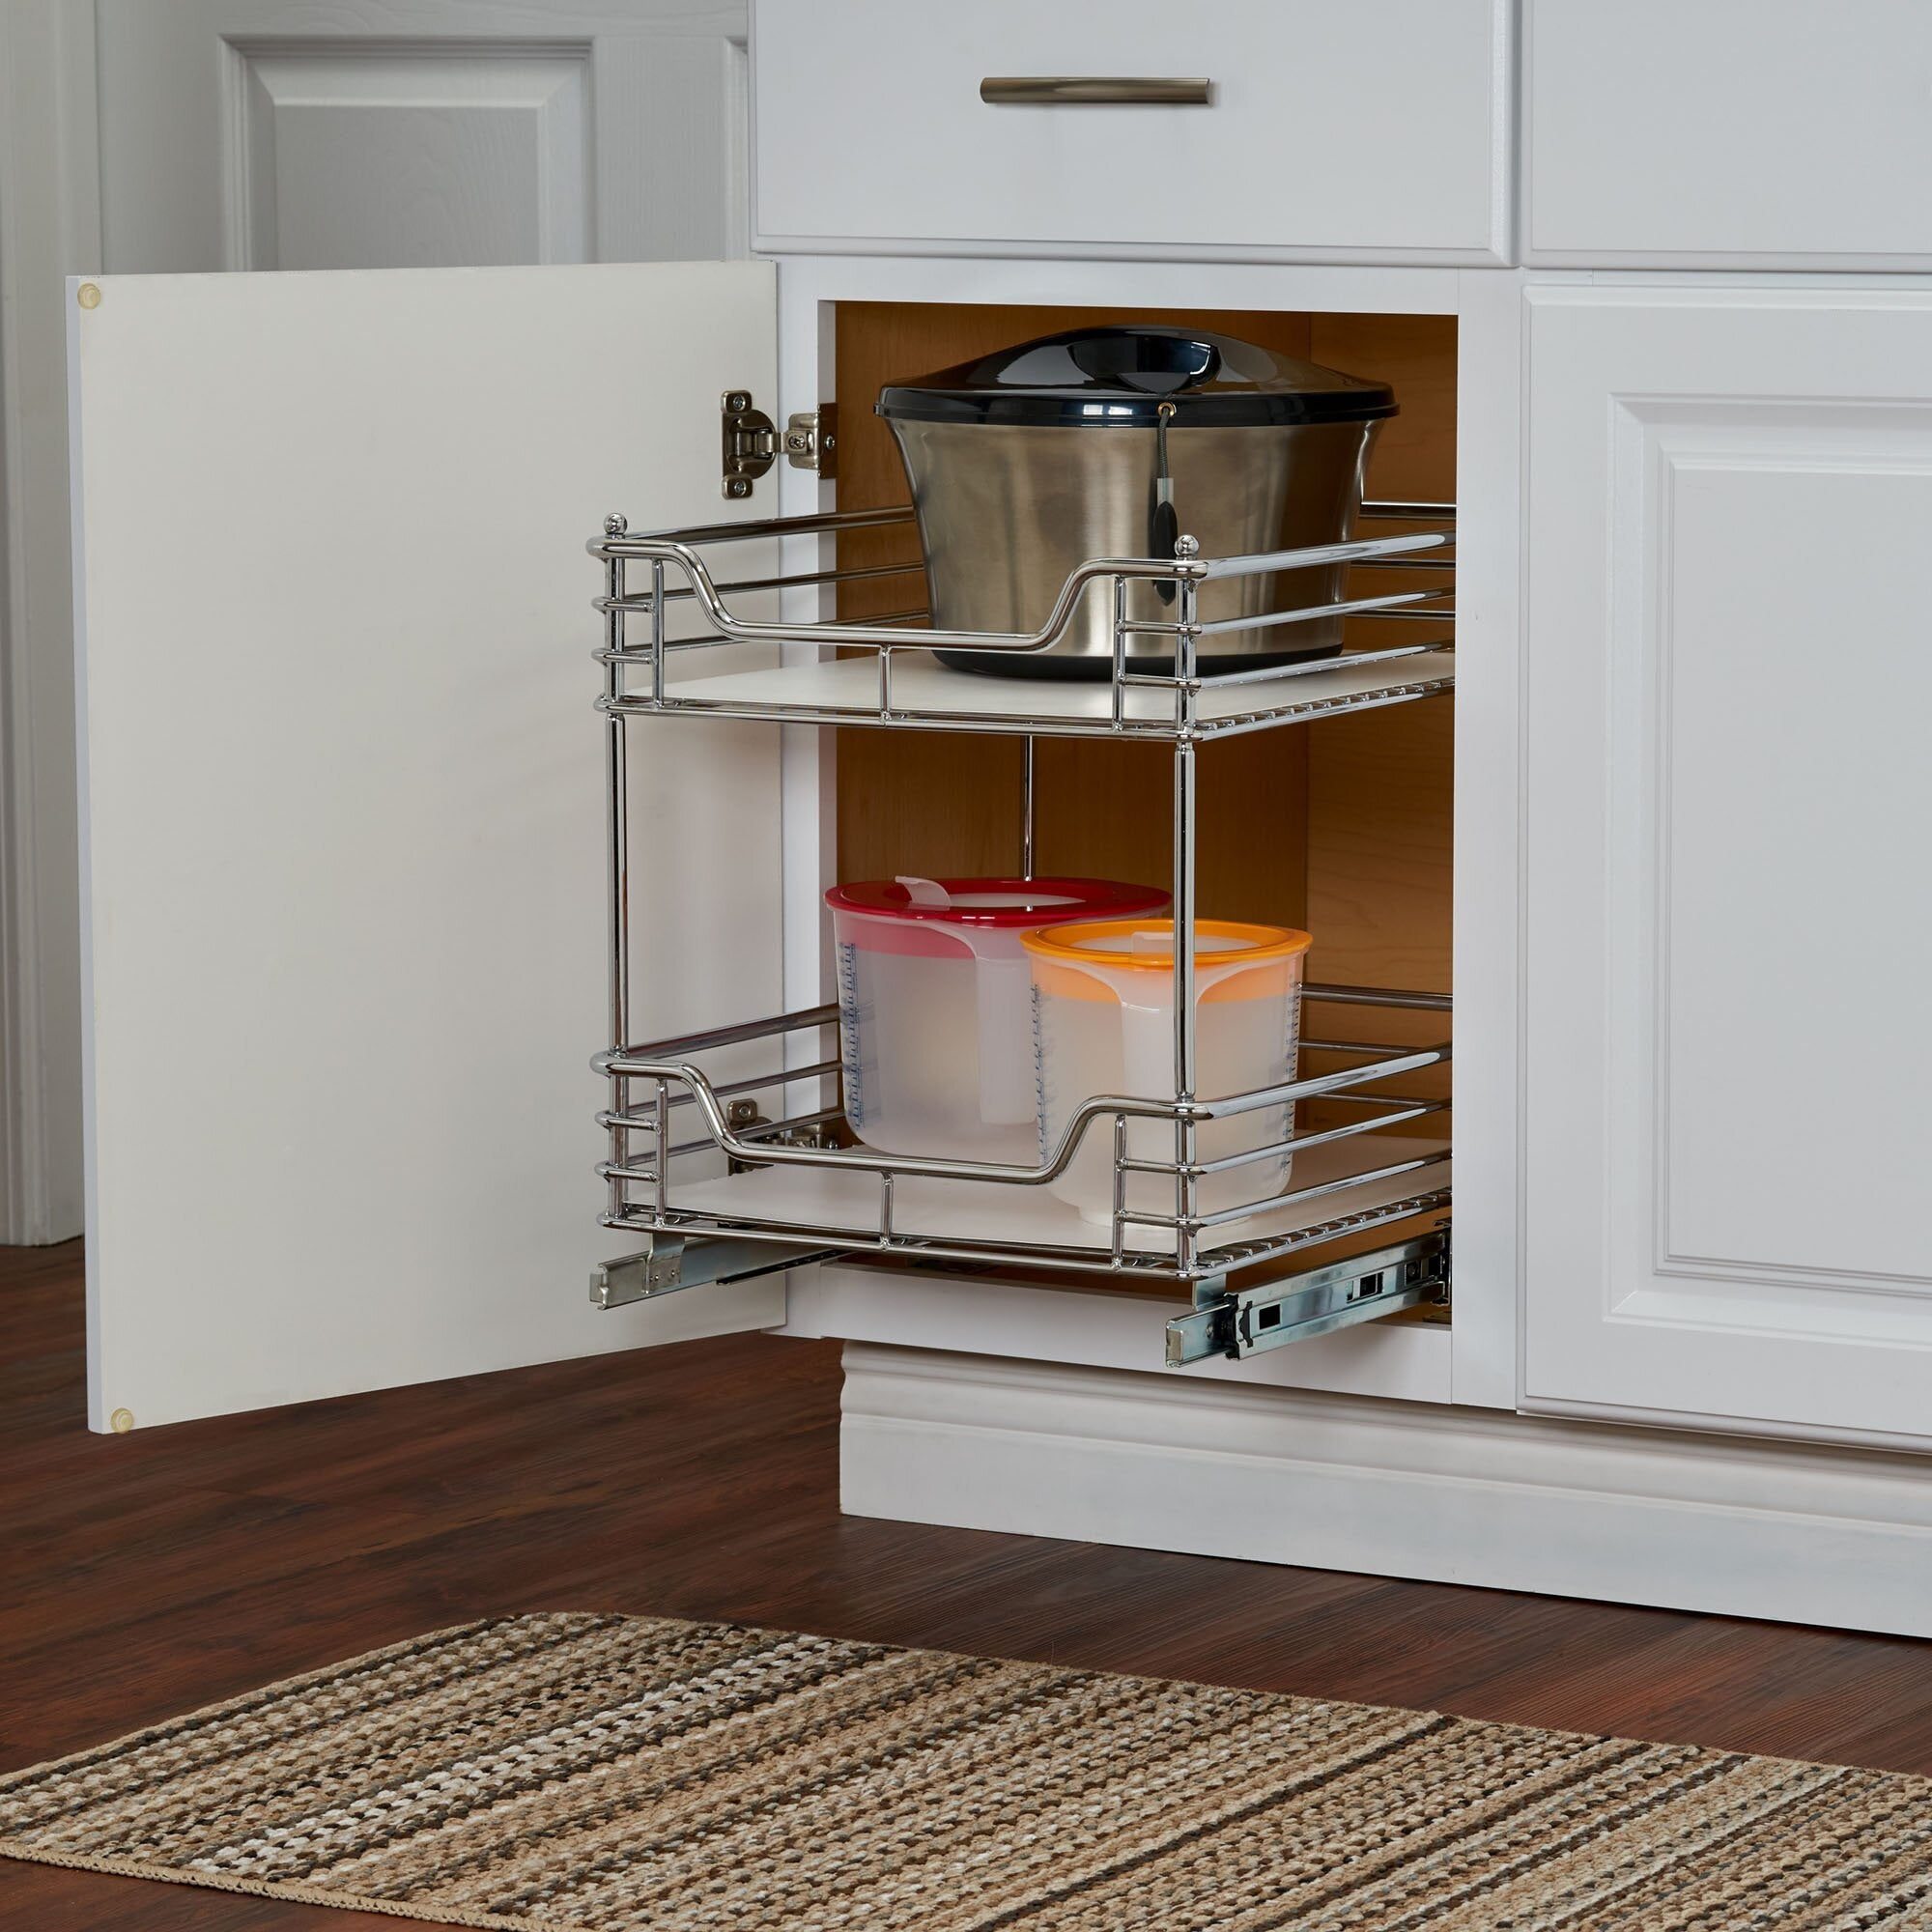 Deep drawer pull-out rack organizer for kitchen